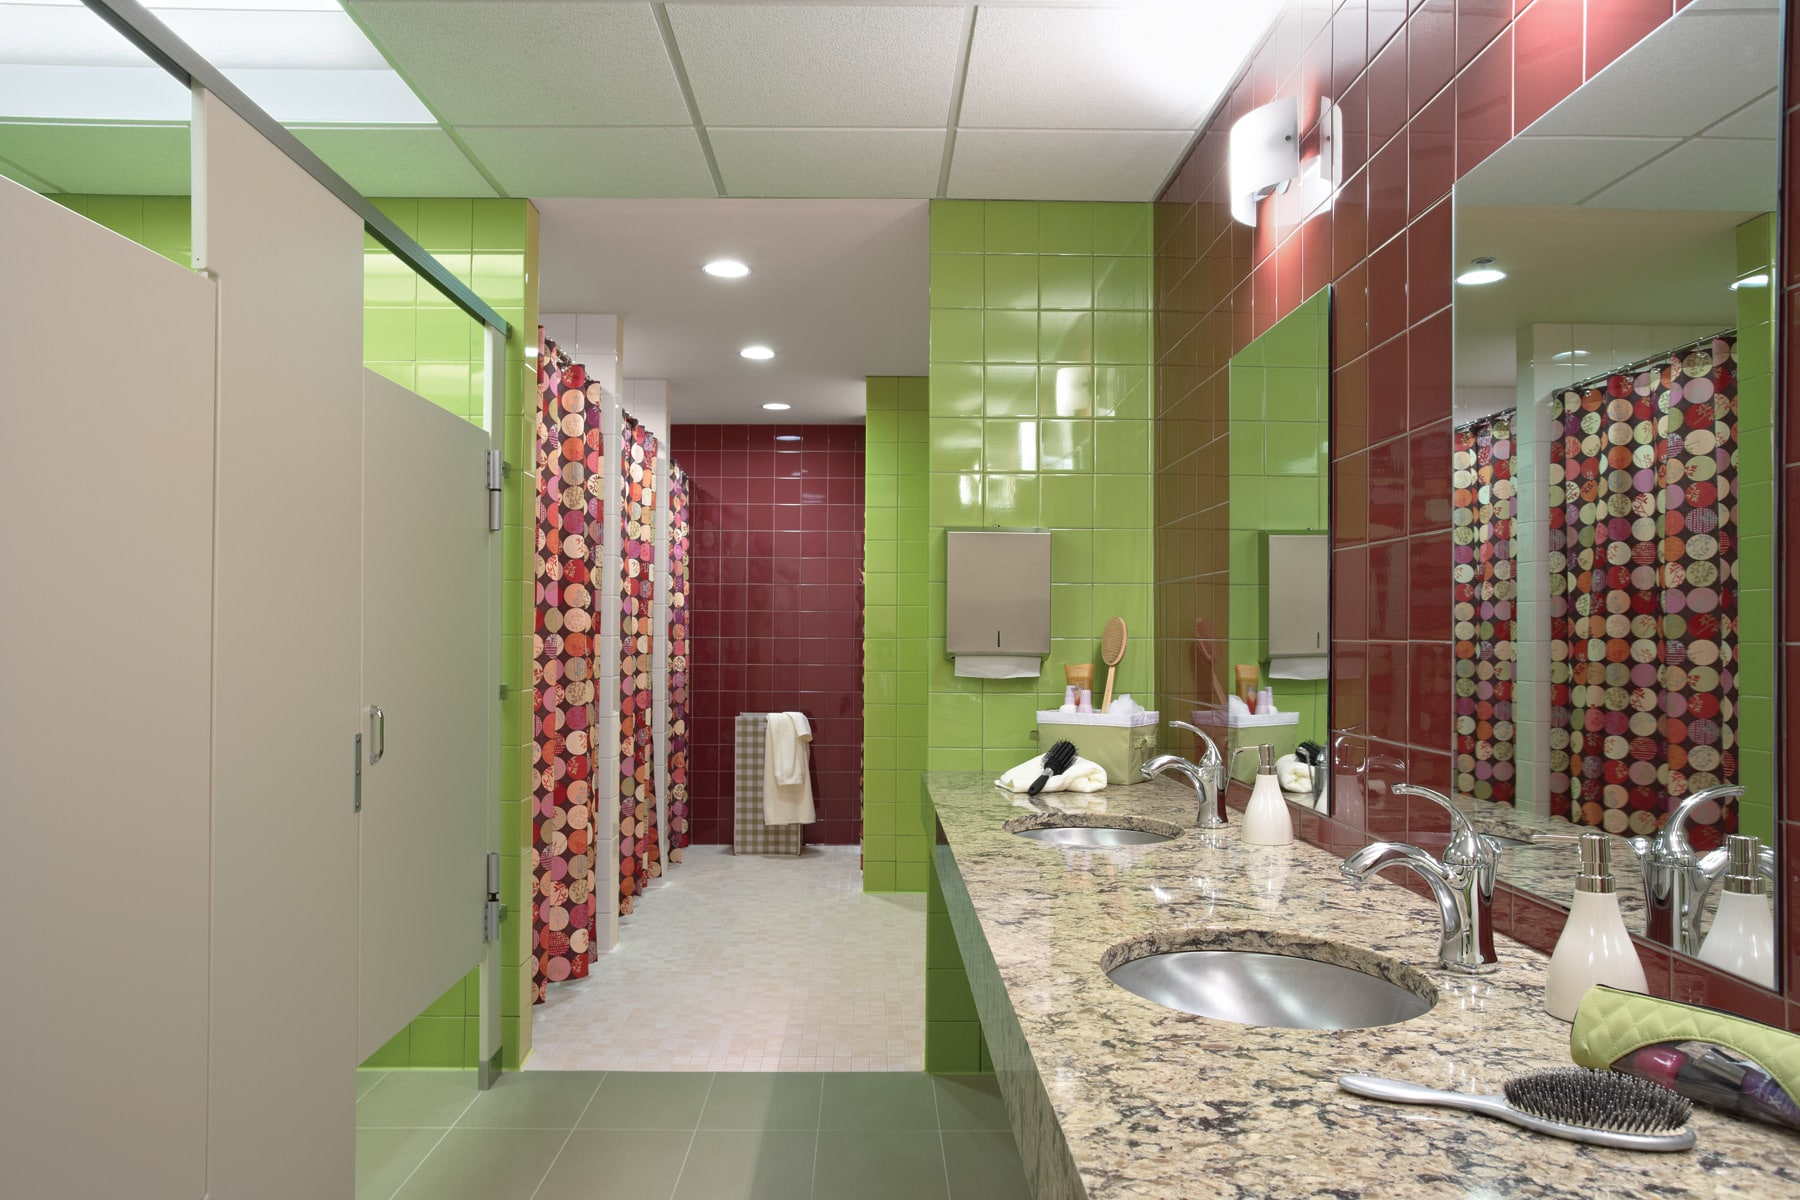 Eating-Disorder-Treatment-Center-Bathroom-Design-Minneapolis-Interior-Designer.jpg